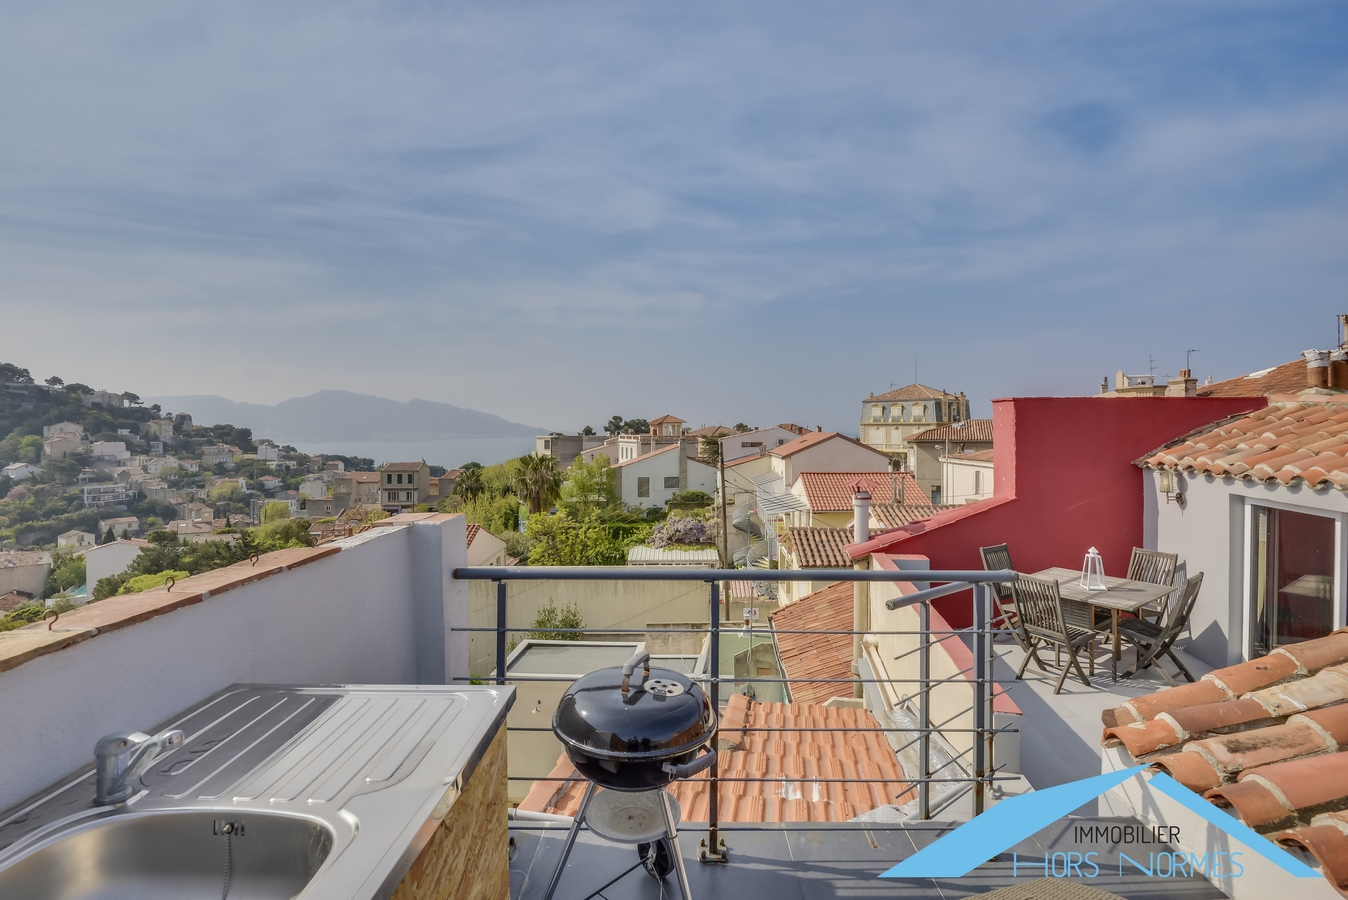 Prix Immobilier Var Three Room Top Floor Duplex Apartment Crossing With Terraces And